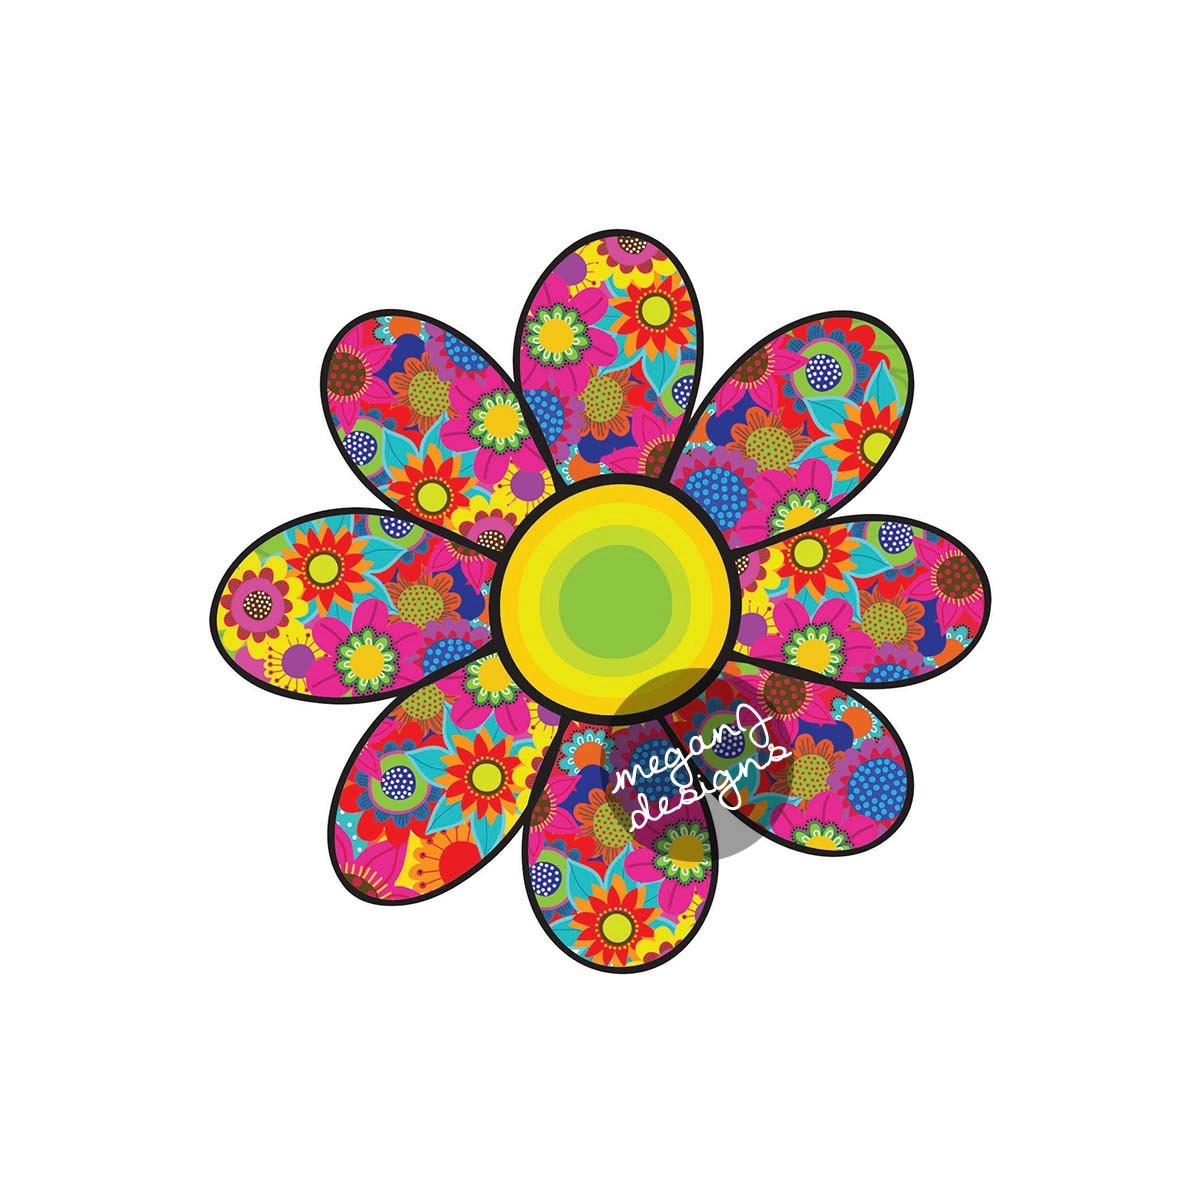 Flower car decal cute daisy colorful floral bumper sticker zoom izmirmasajfo Gallery